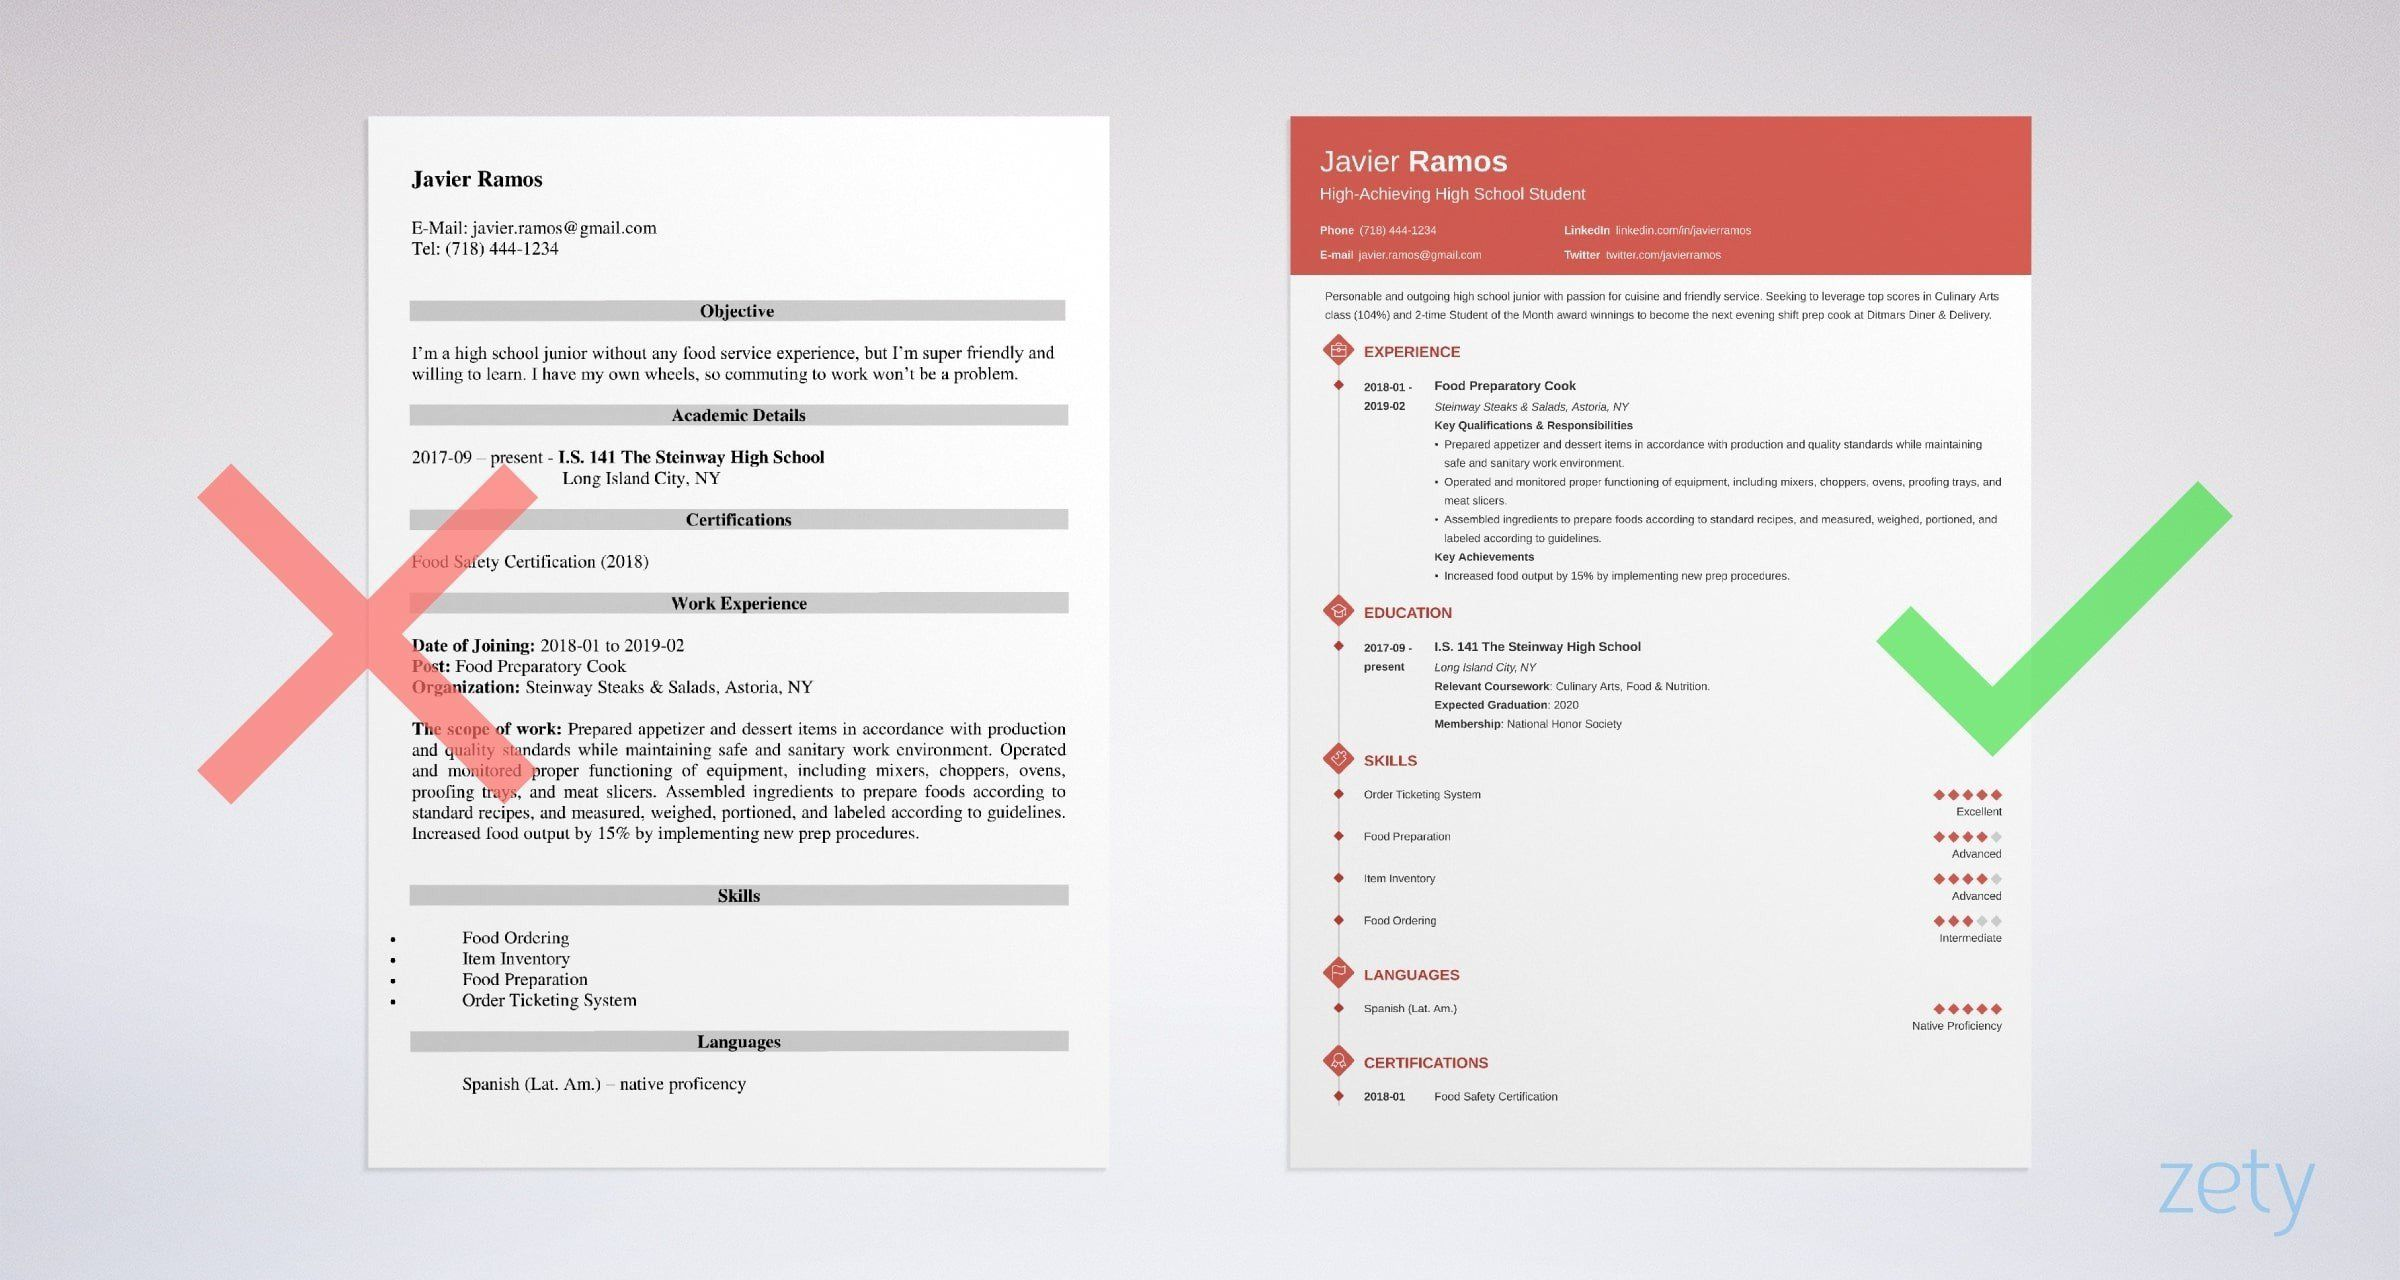 006 Remarkable High School Student Resume Template Idea  Free Microsoft Word 2010Full